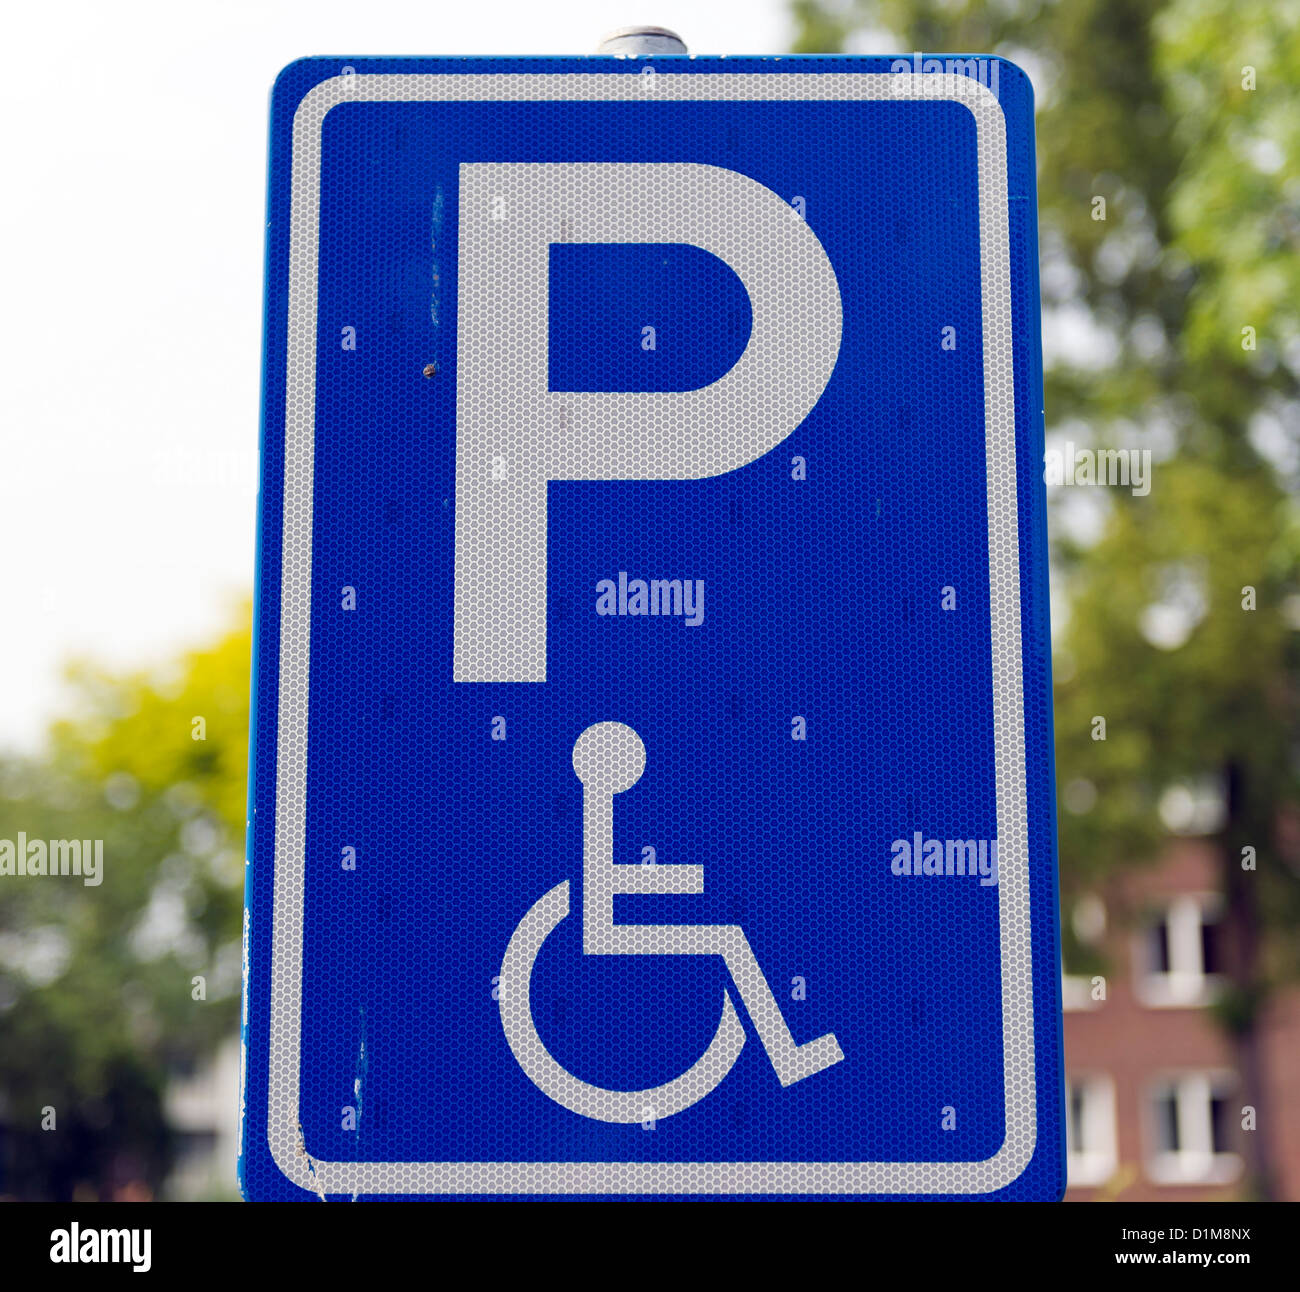 parking sign for disabled people - Stock Image